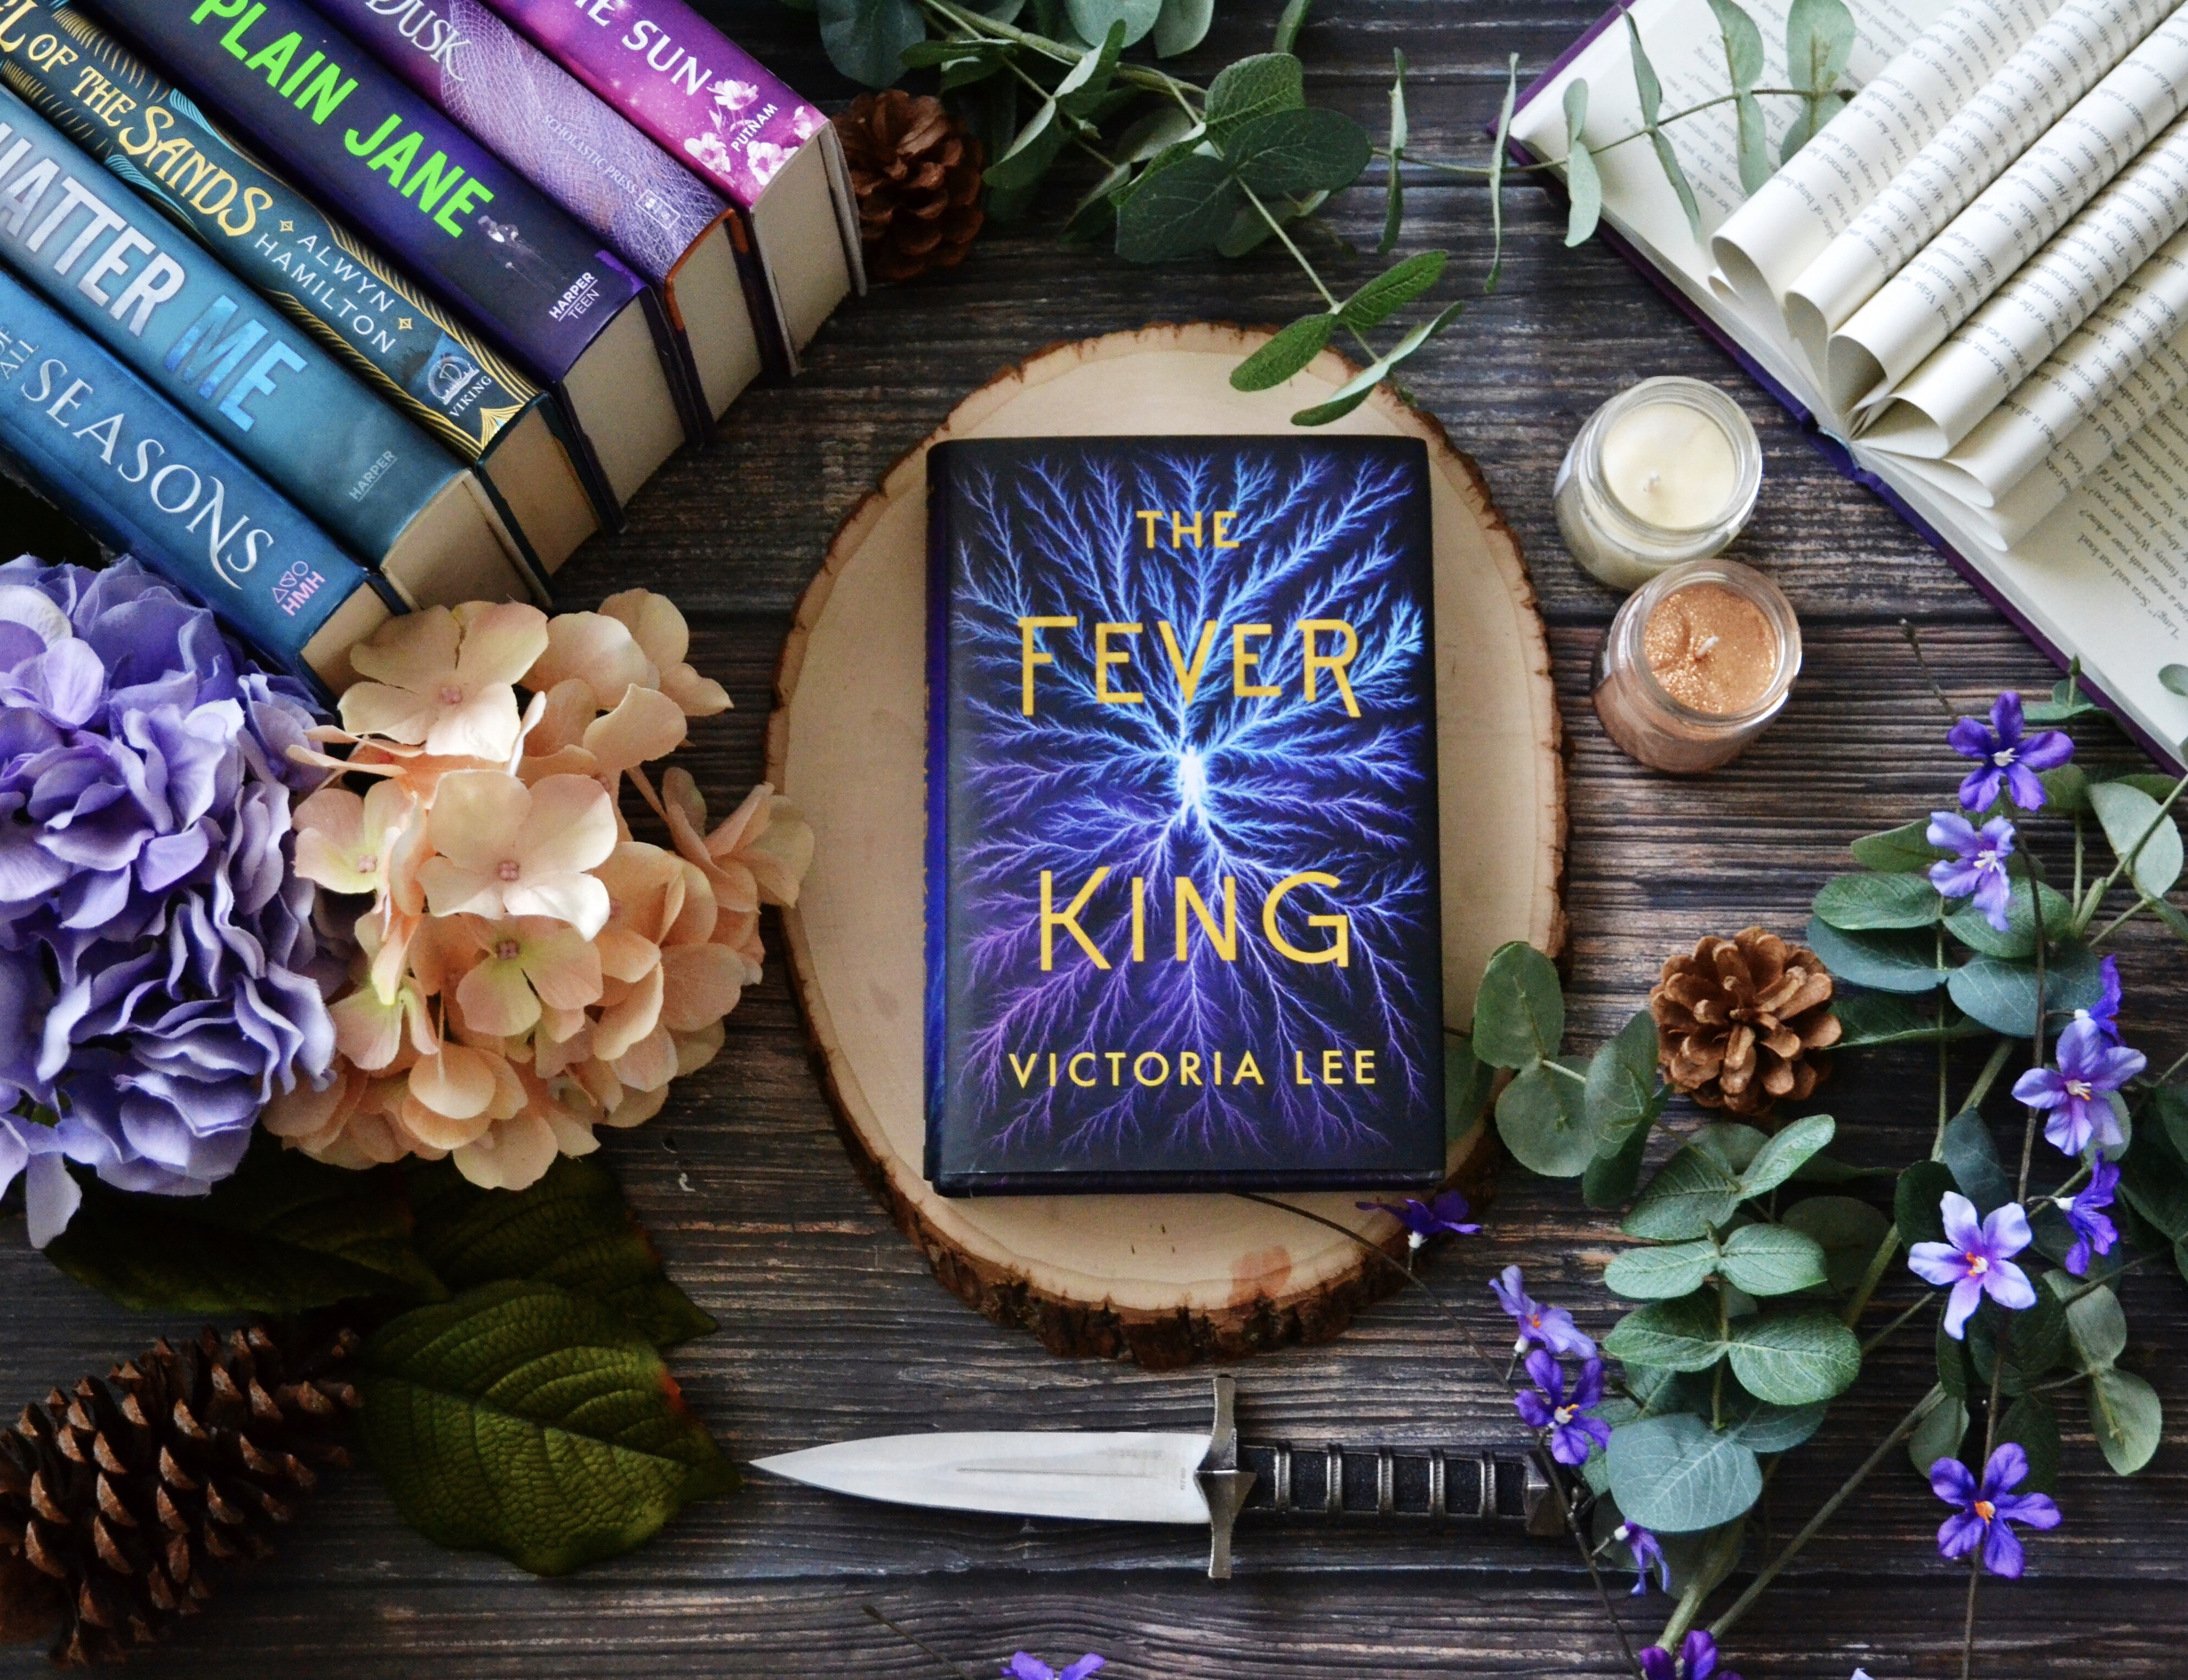 The Fever King by Victoria Lee | Spoiler Free Review